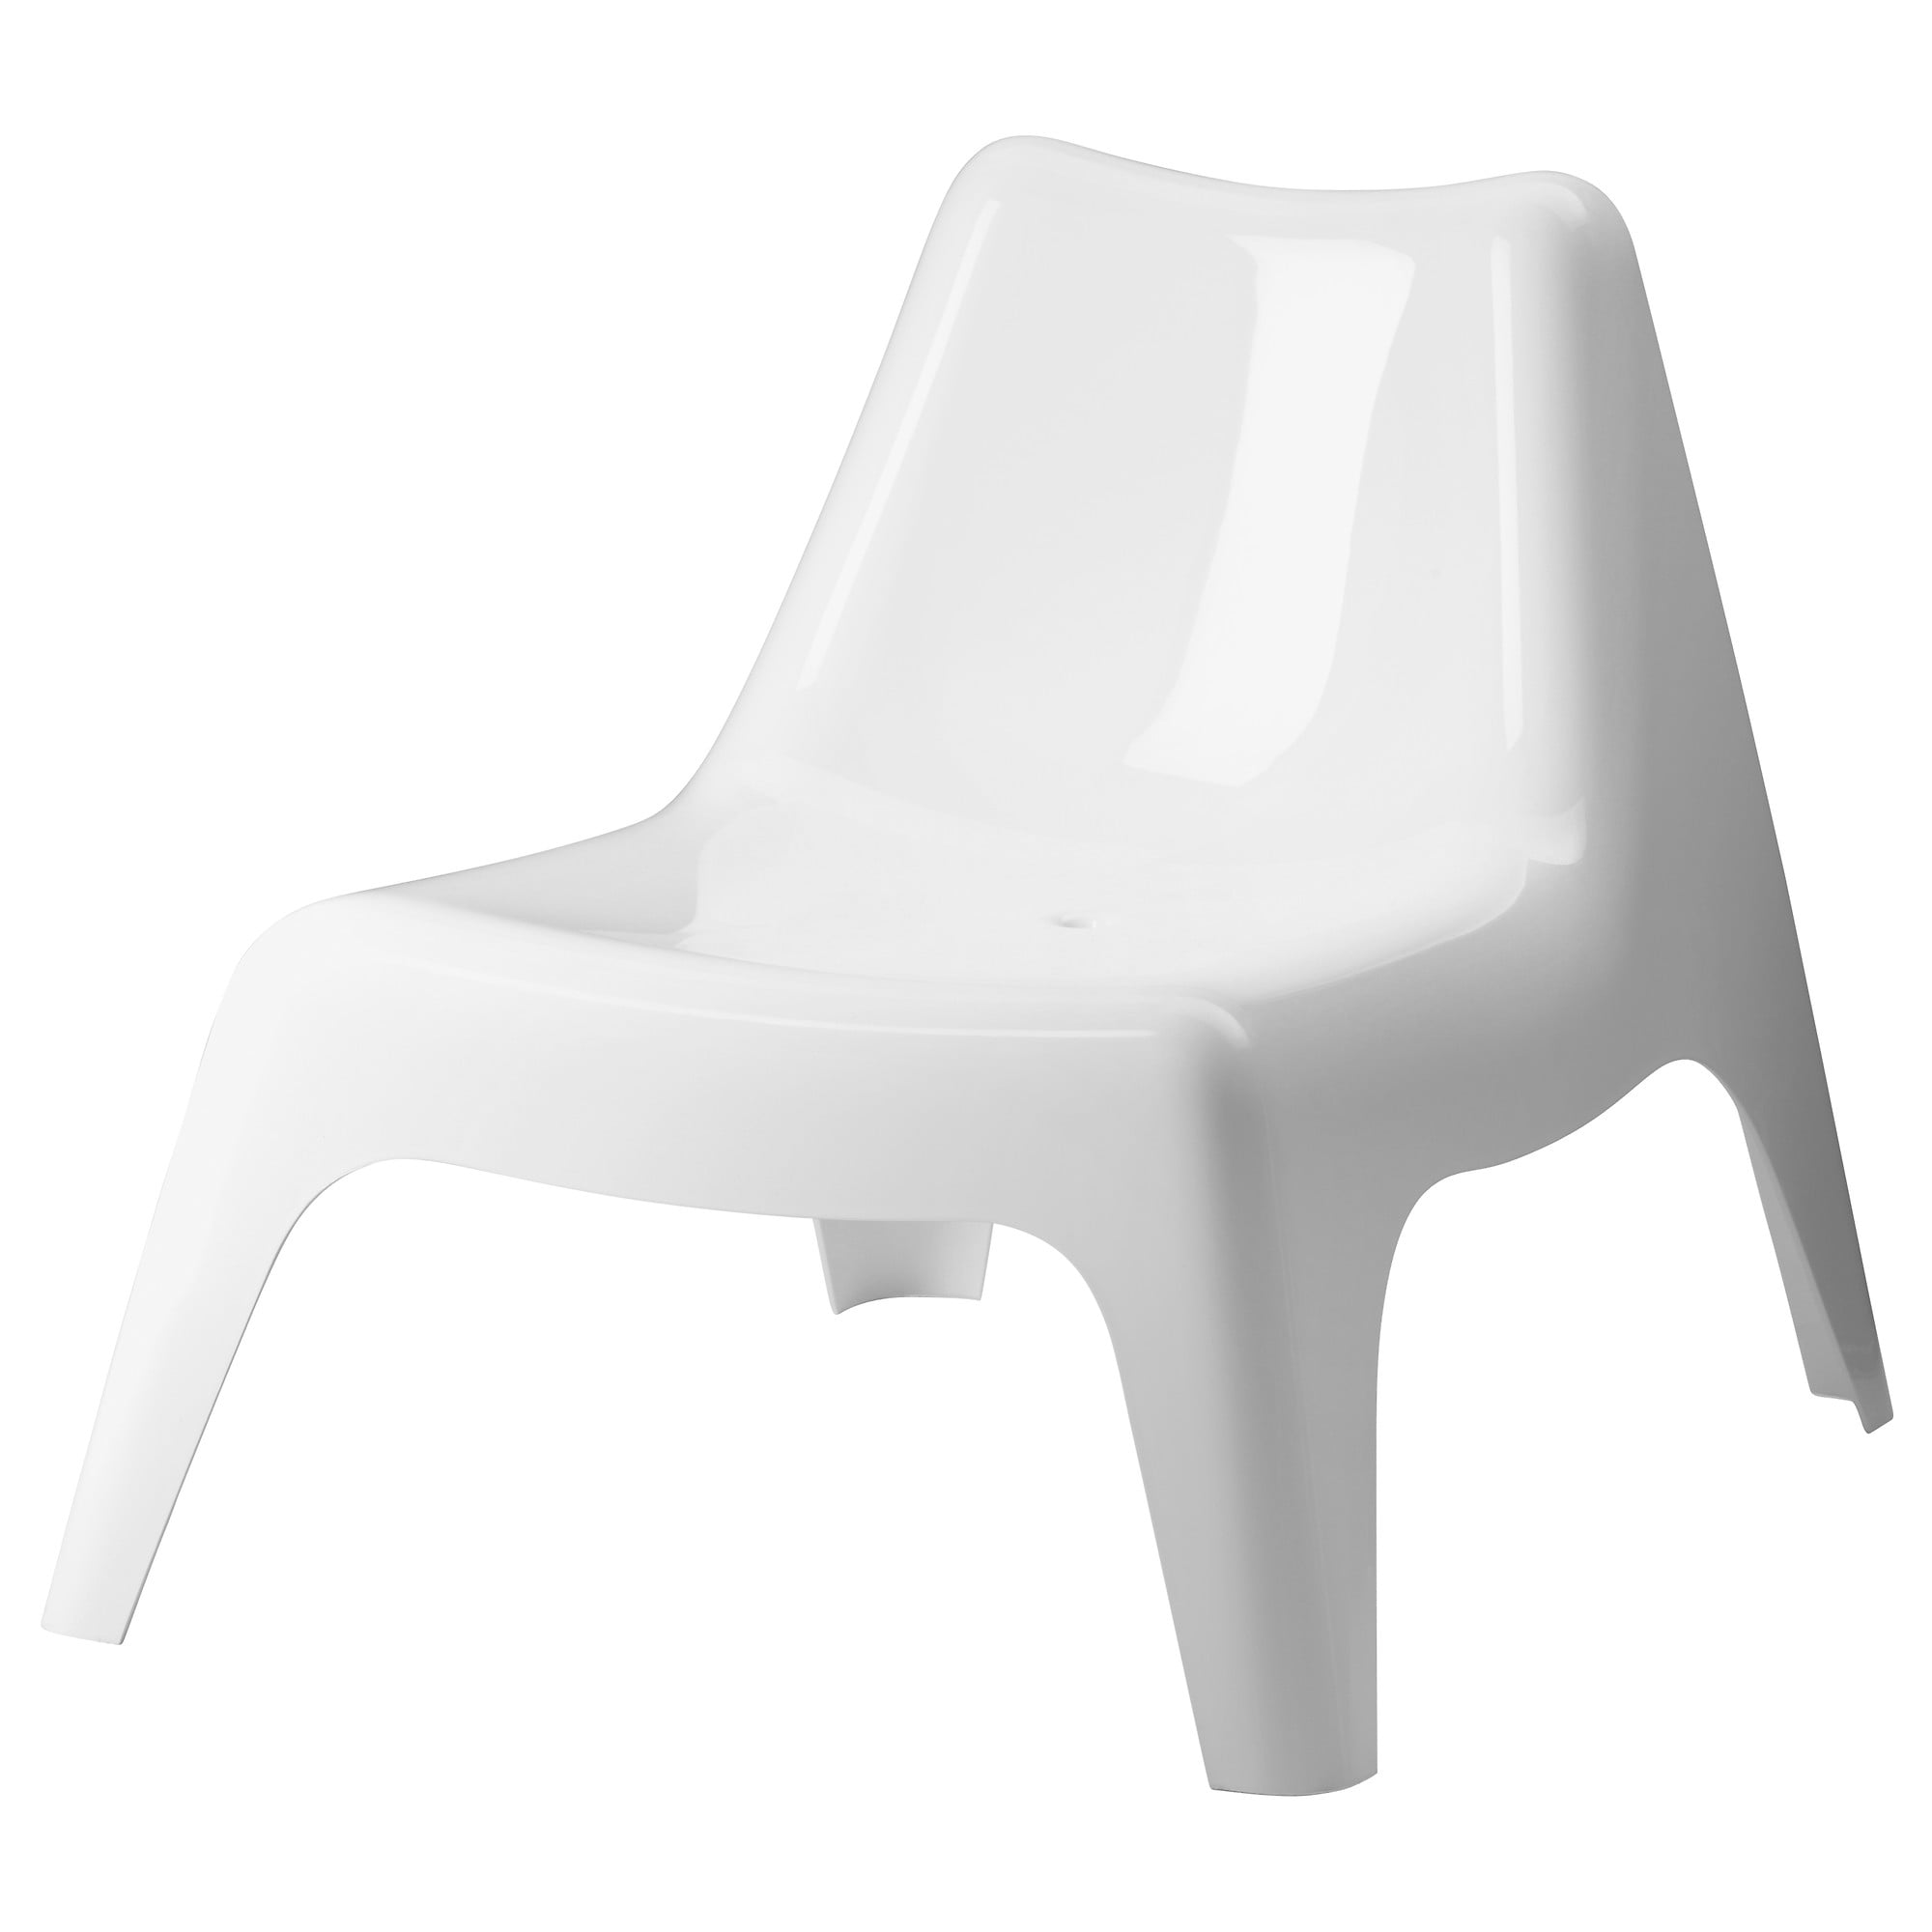 Ps Vago Chair Outdoor White Ikea Outdoor Furniture Ikea